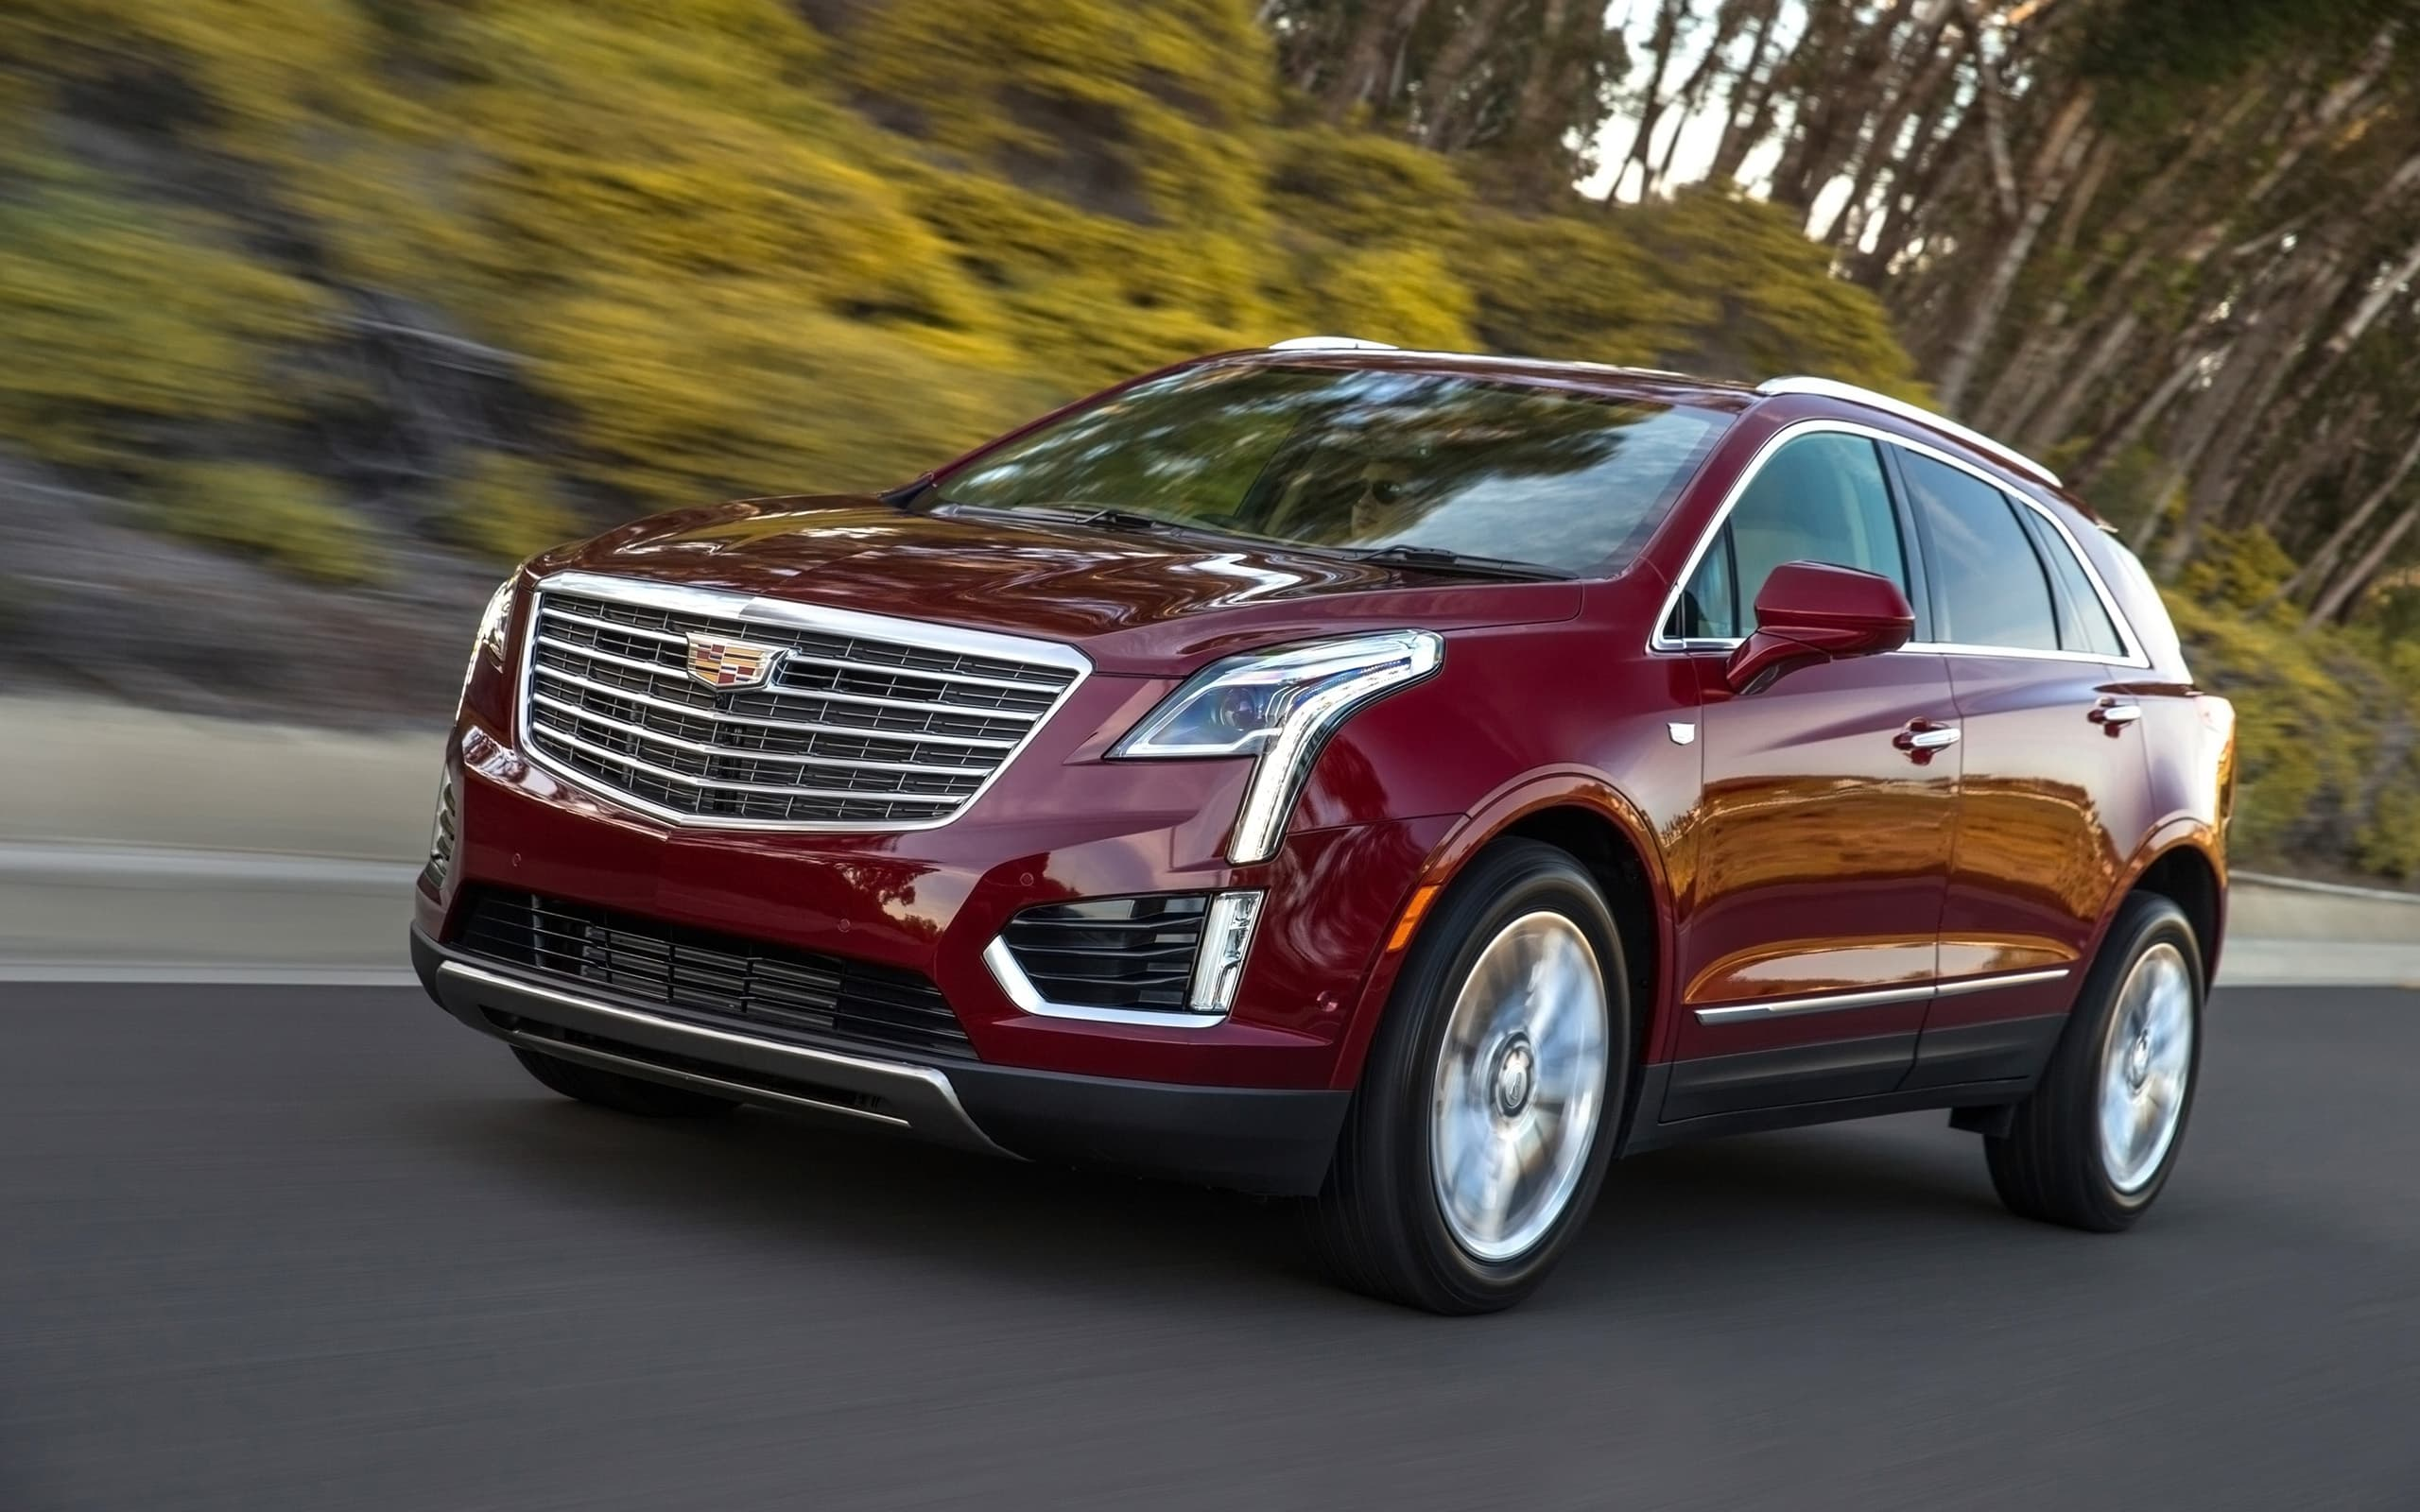 All White Cars Wallpaper 2017 Cadillac Xt5 Wallpapers Hd Suv Black Red White Silver